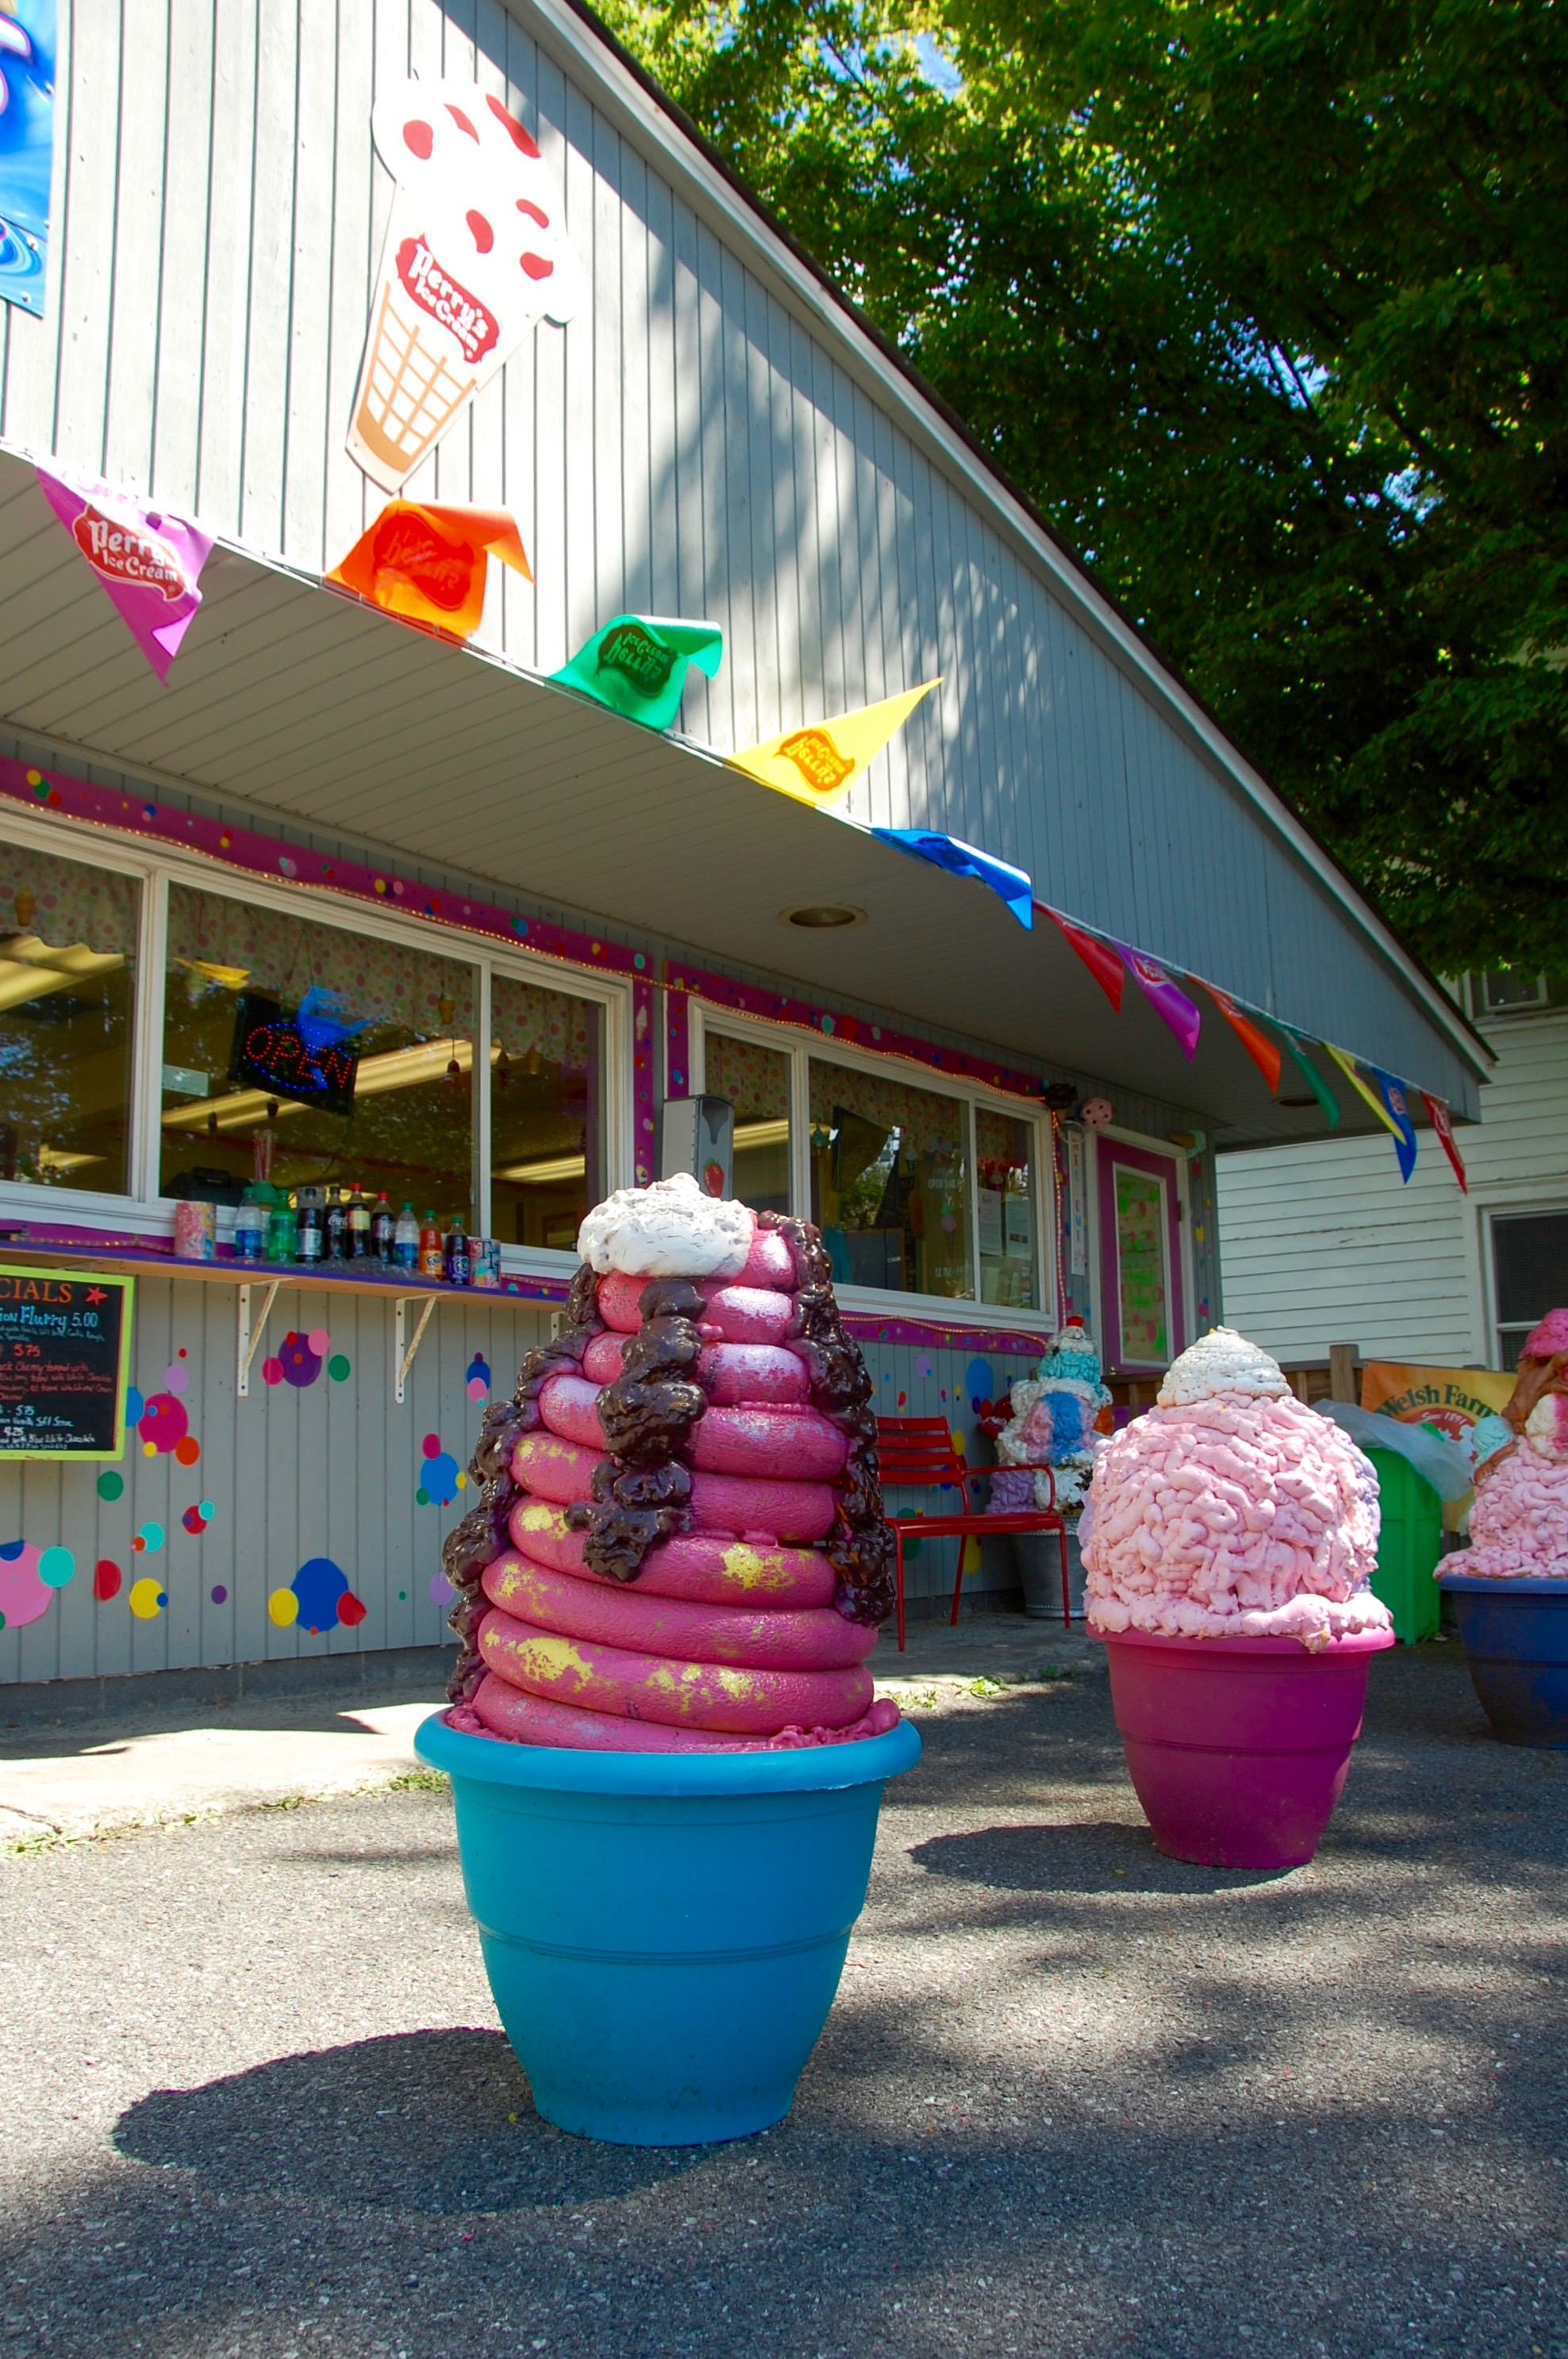 Giant ice cream sculptures decorate the parking lot at 2 Twisted Ladies in Greenville.